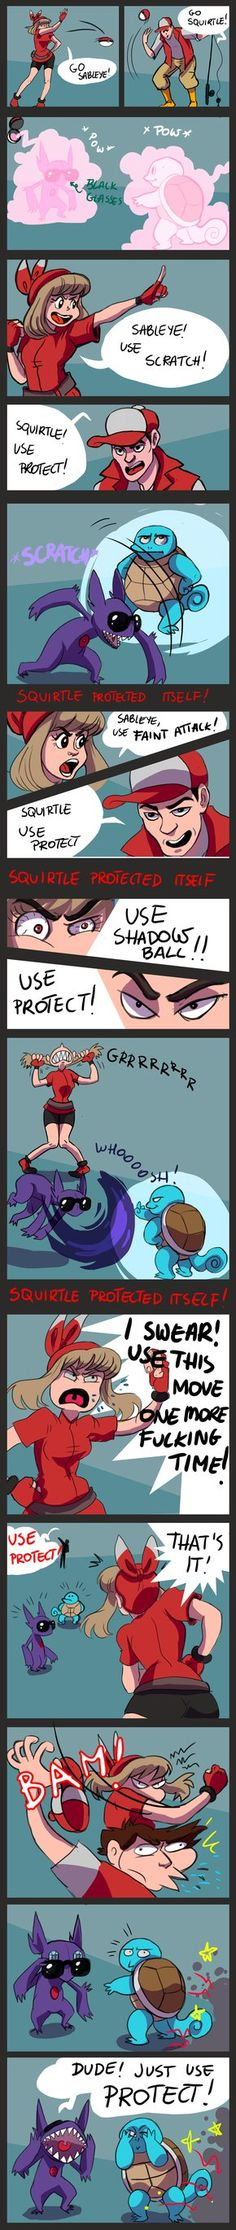 Pokecomic by julitka.deviantart.com on @DeviantArt